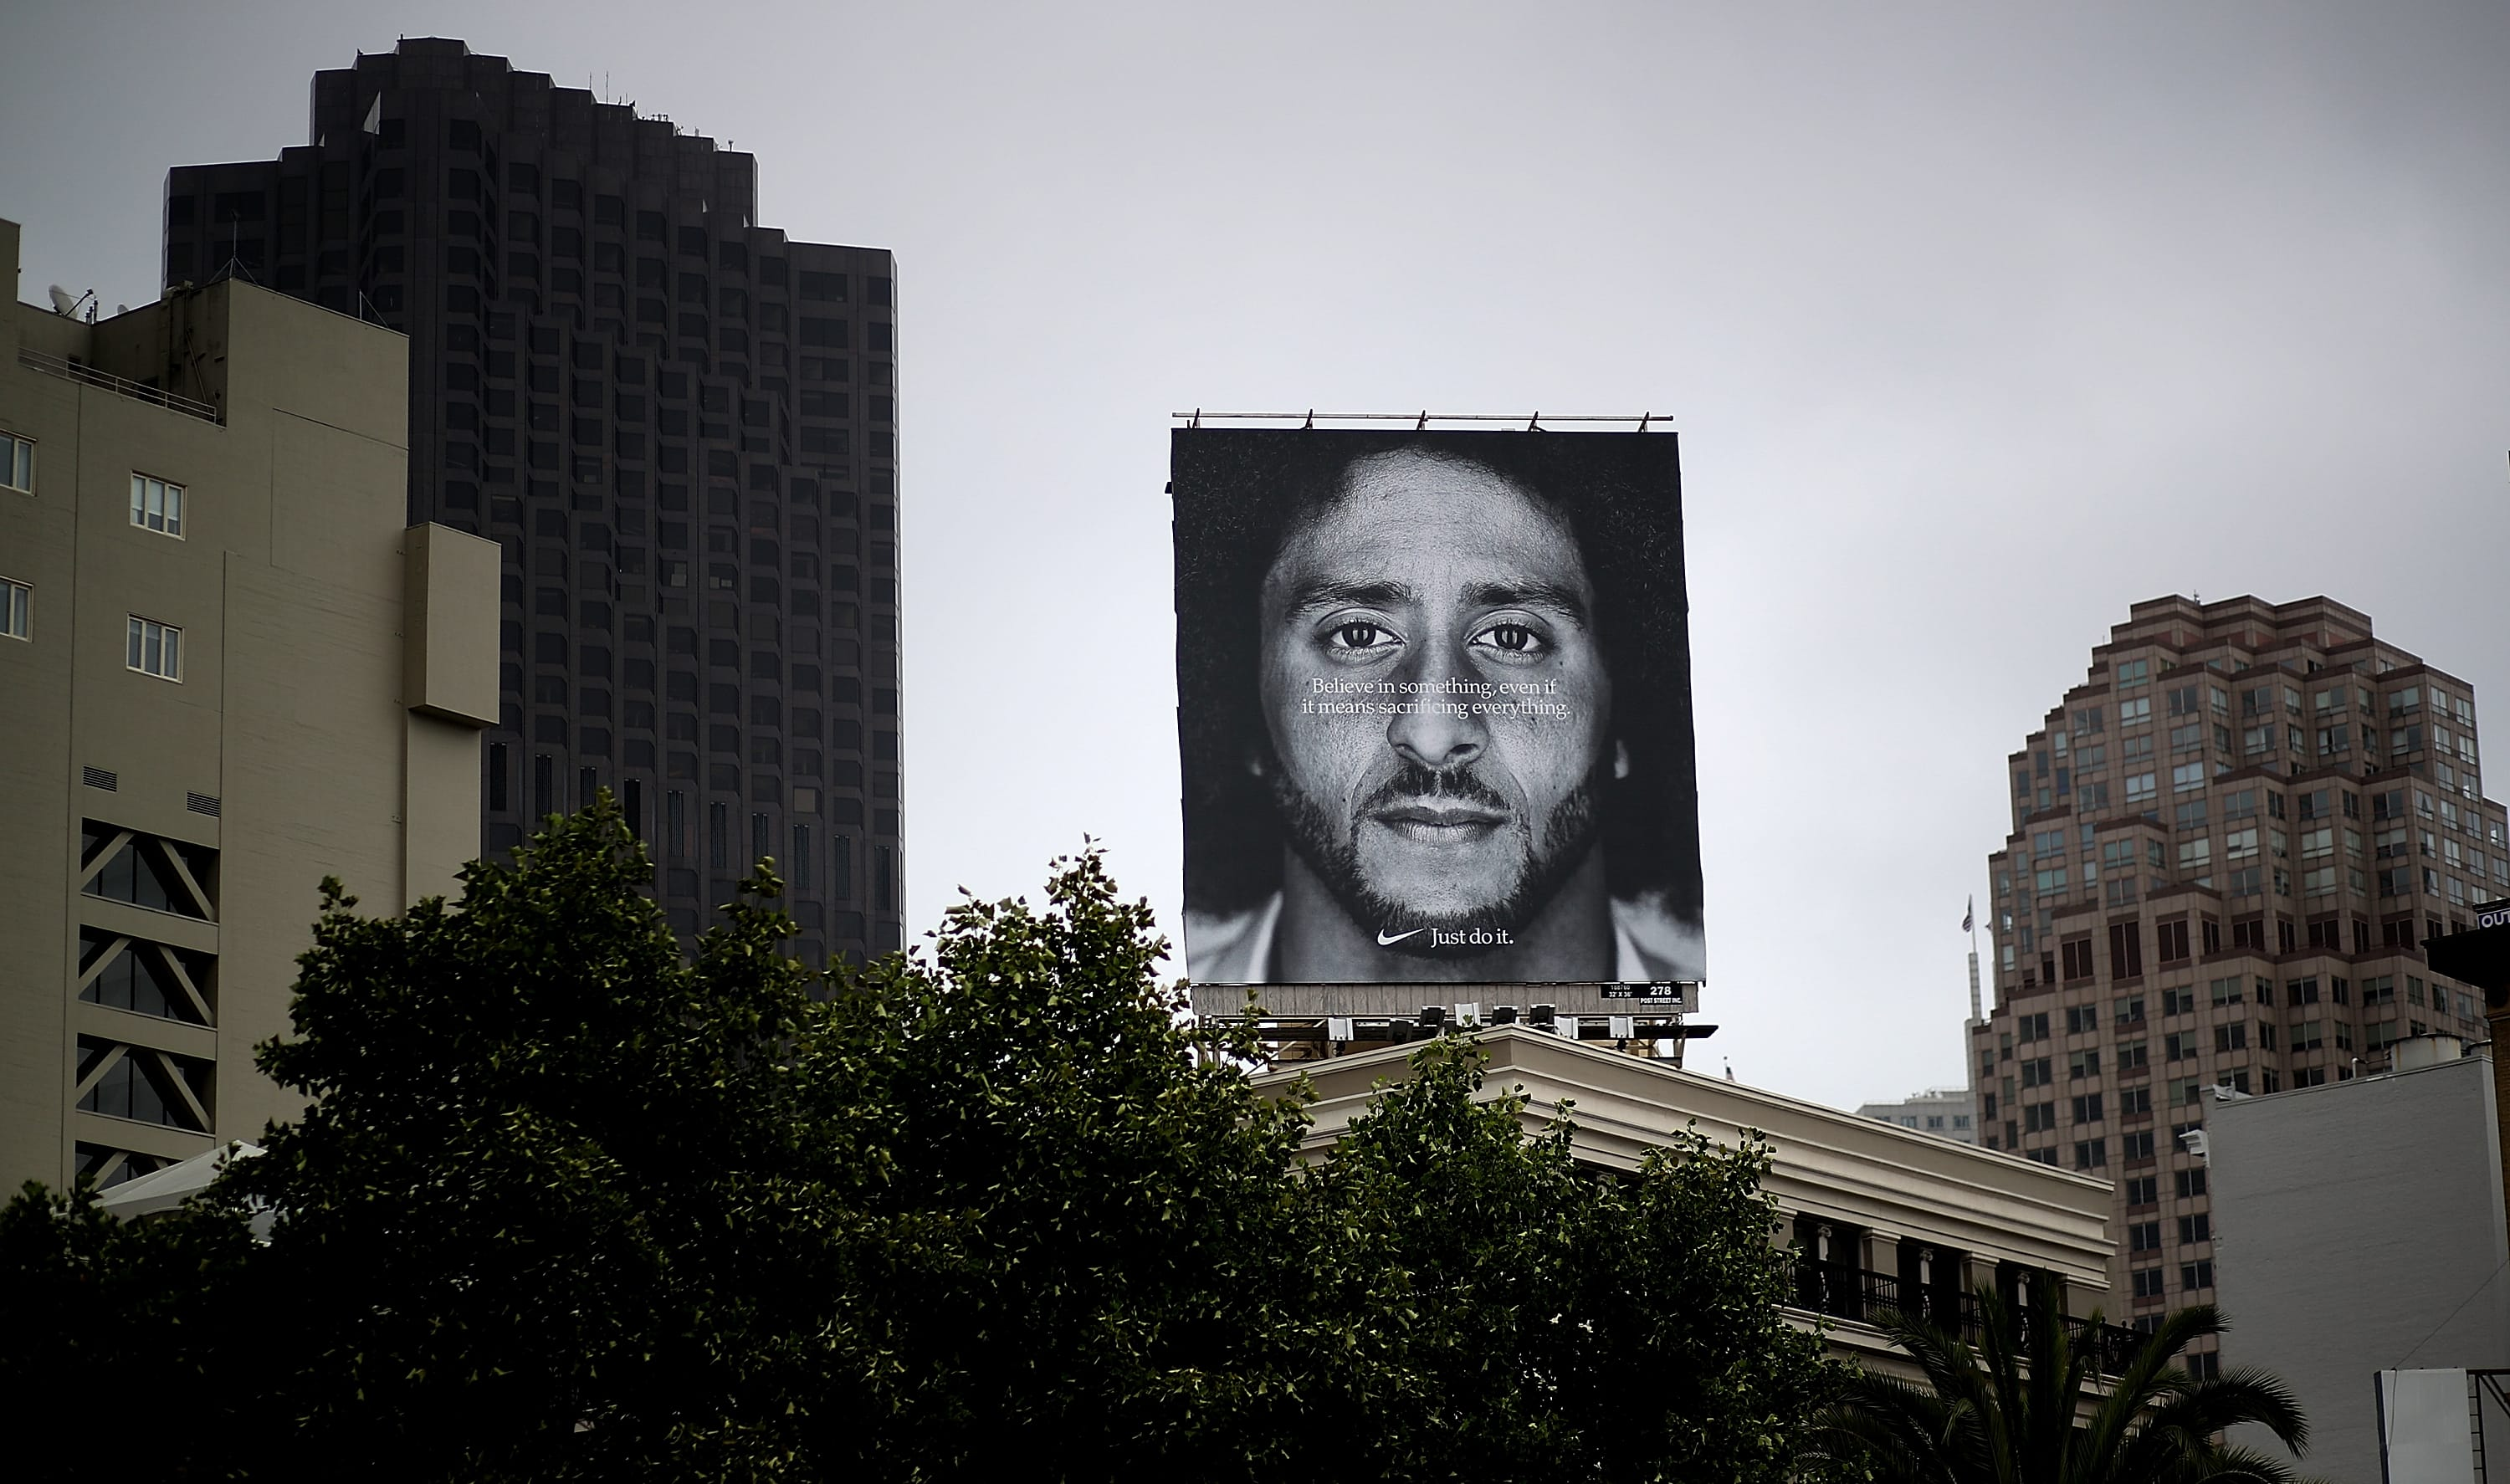 Nike's Online Sales Skyrocketed 31% after their Kaepernick Campaign